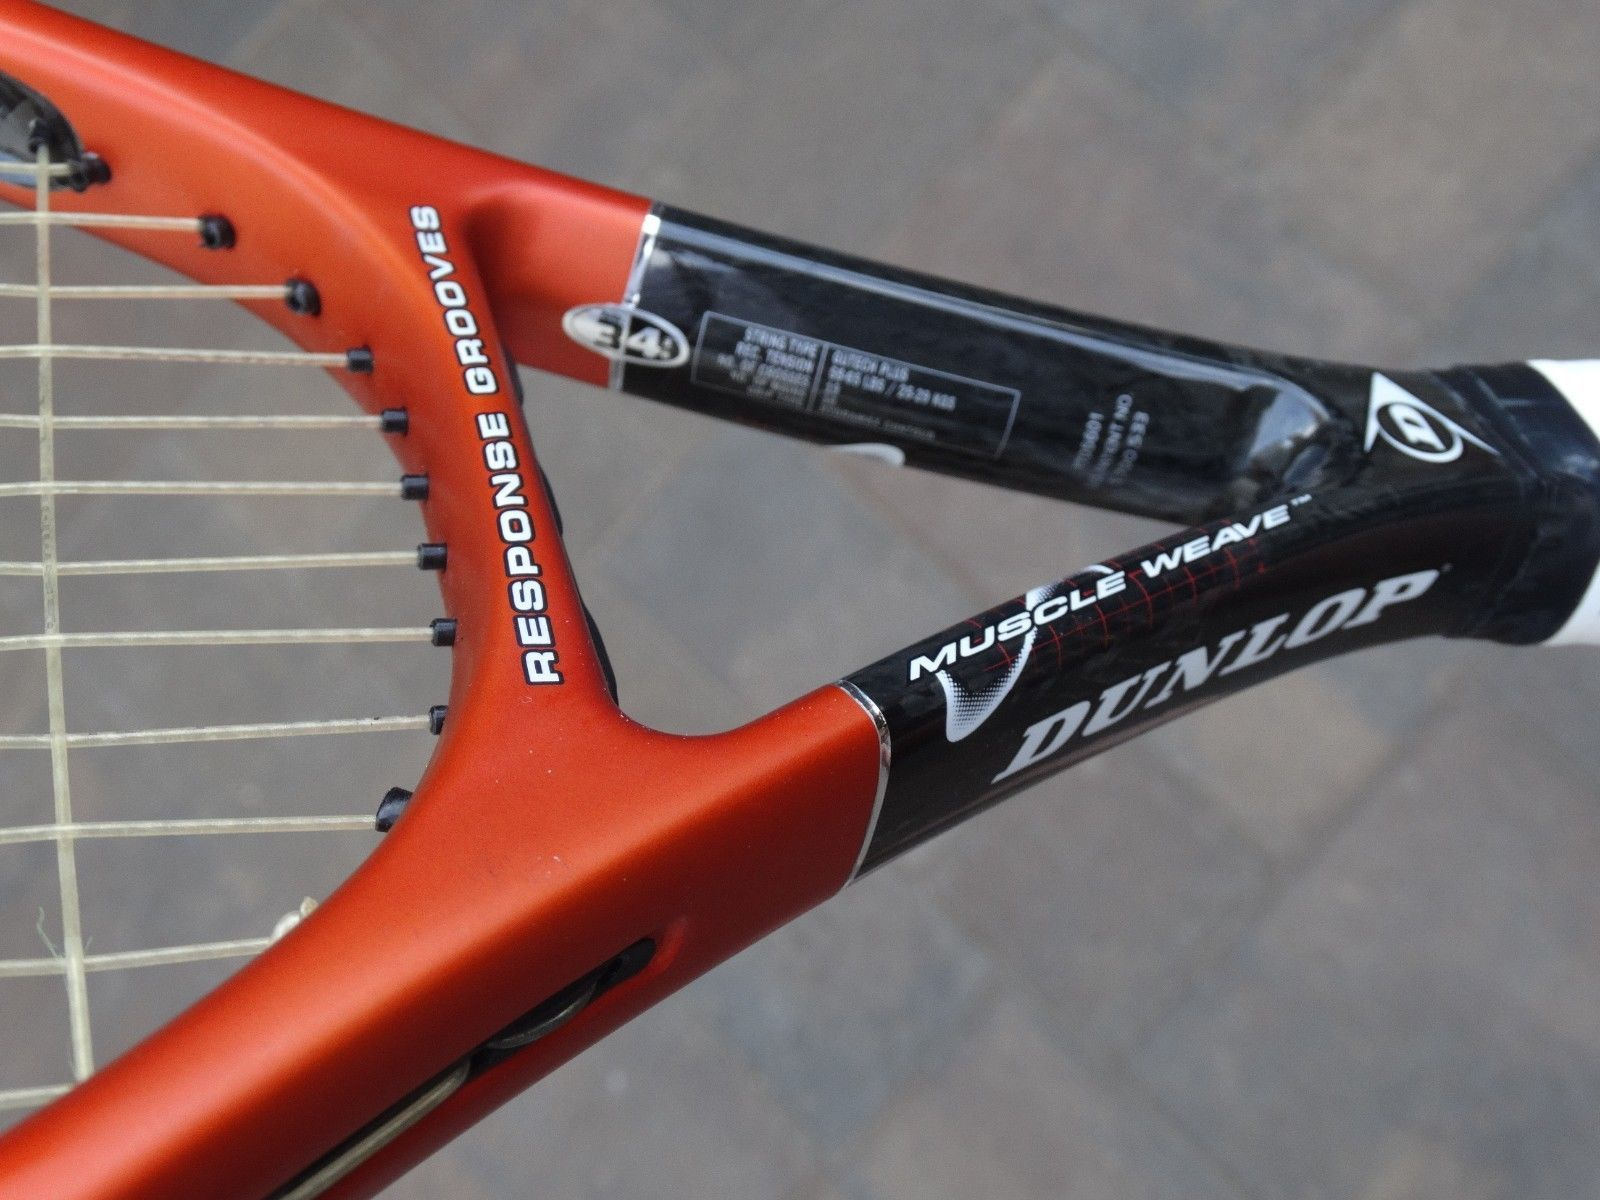 DUNLOP VISION 110 TENNIS RACKET RACQUET MUSCLE WEAVE RESPONSE GROOVES SIZE 4 3/8